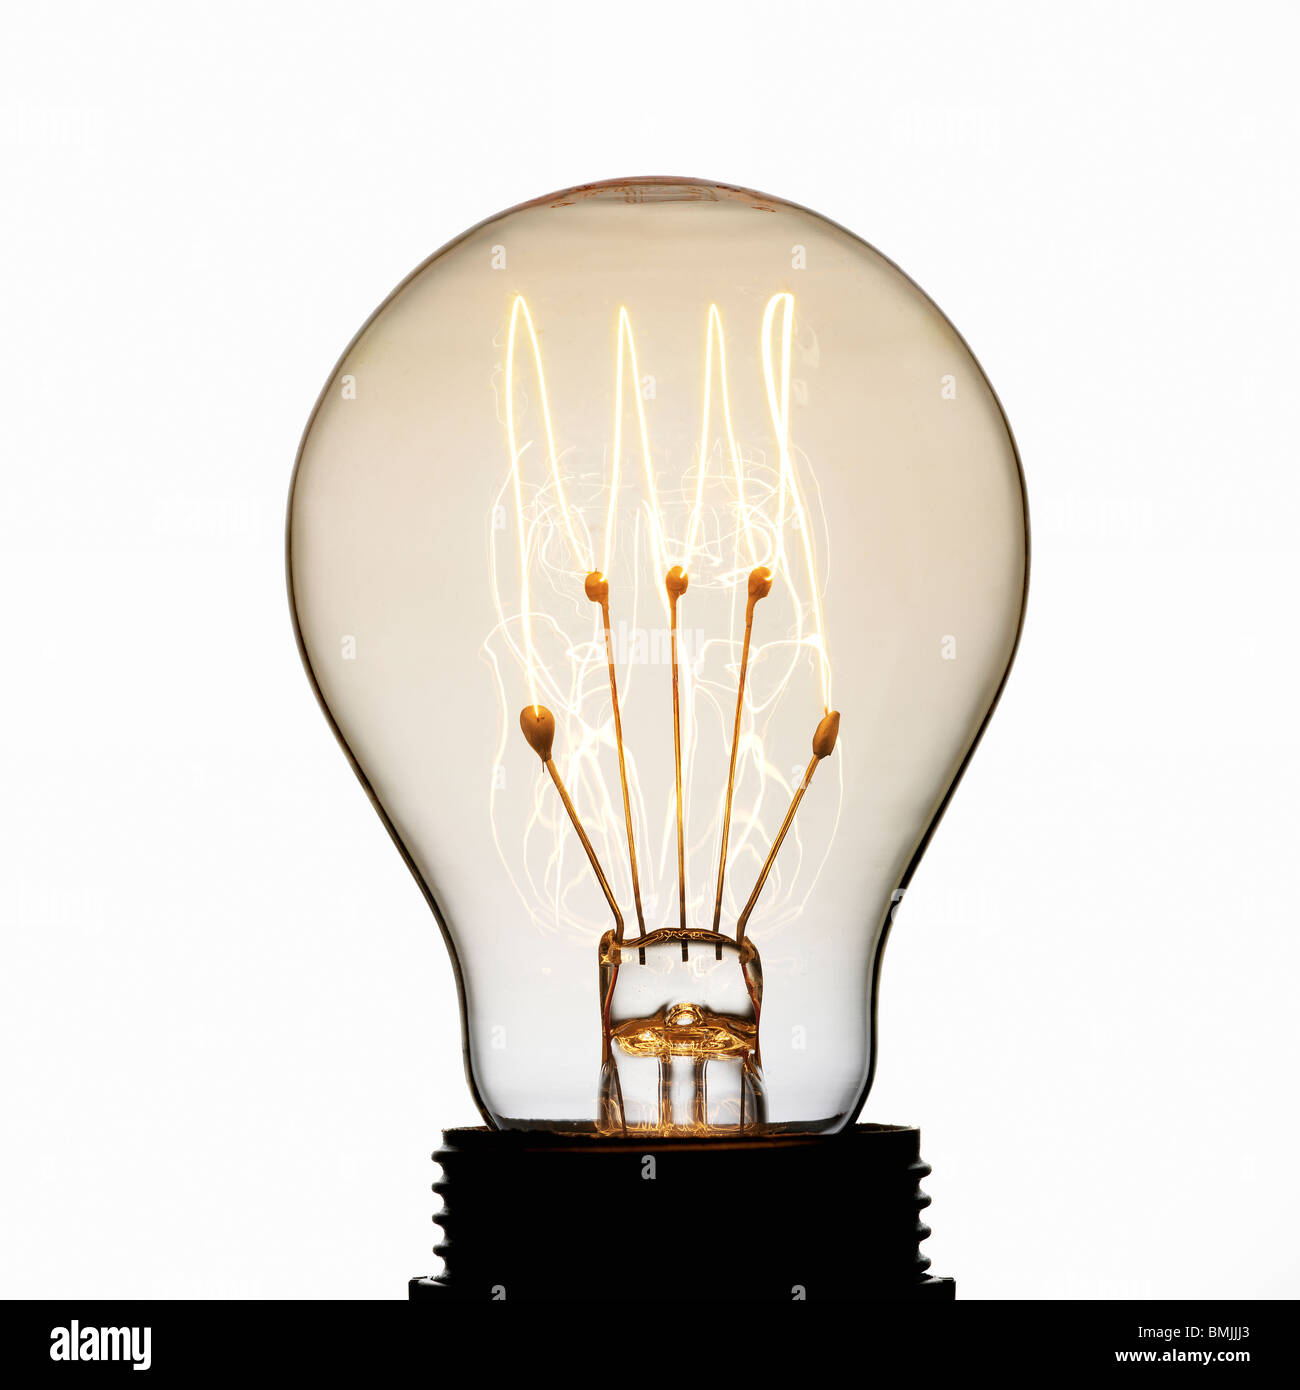 View of electric bulb against white background - Stock Image